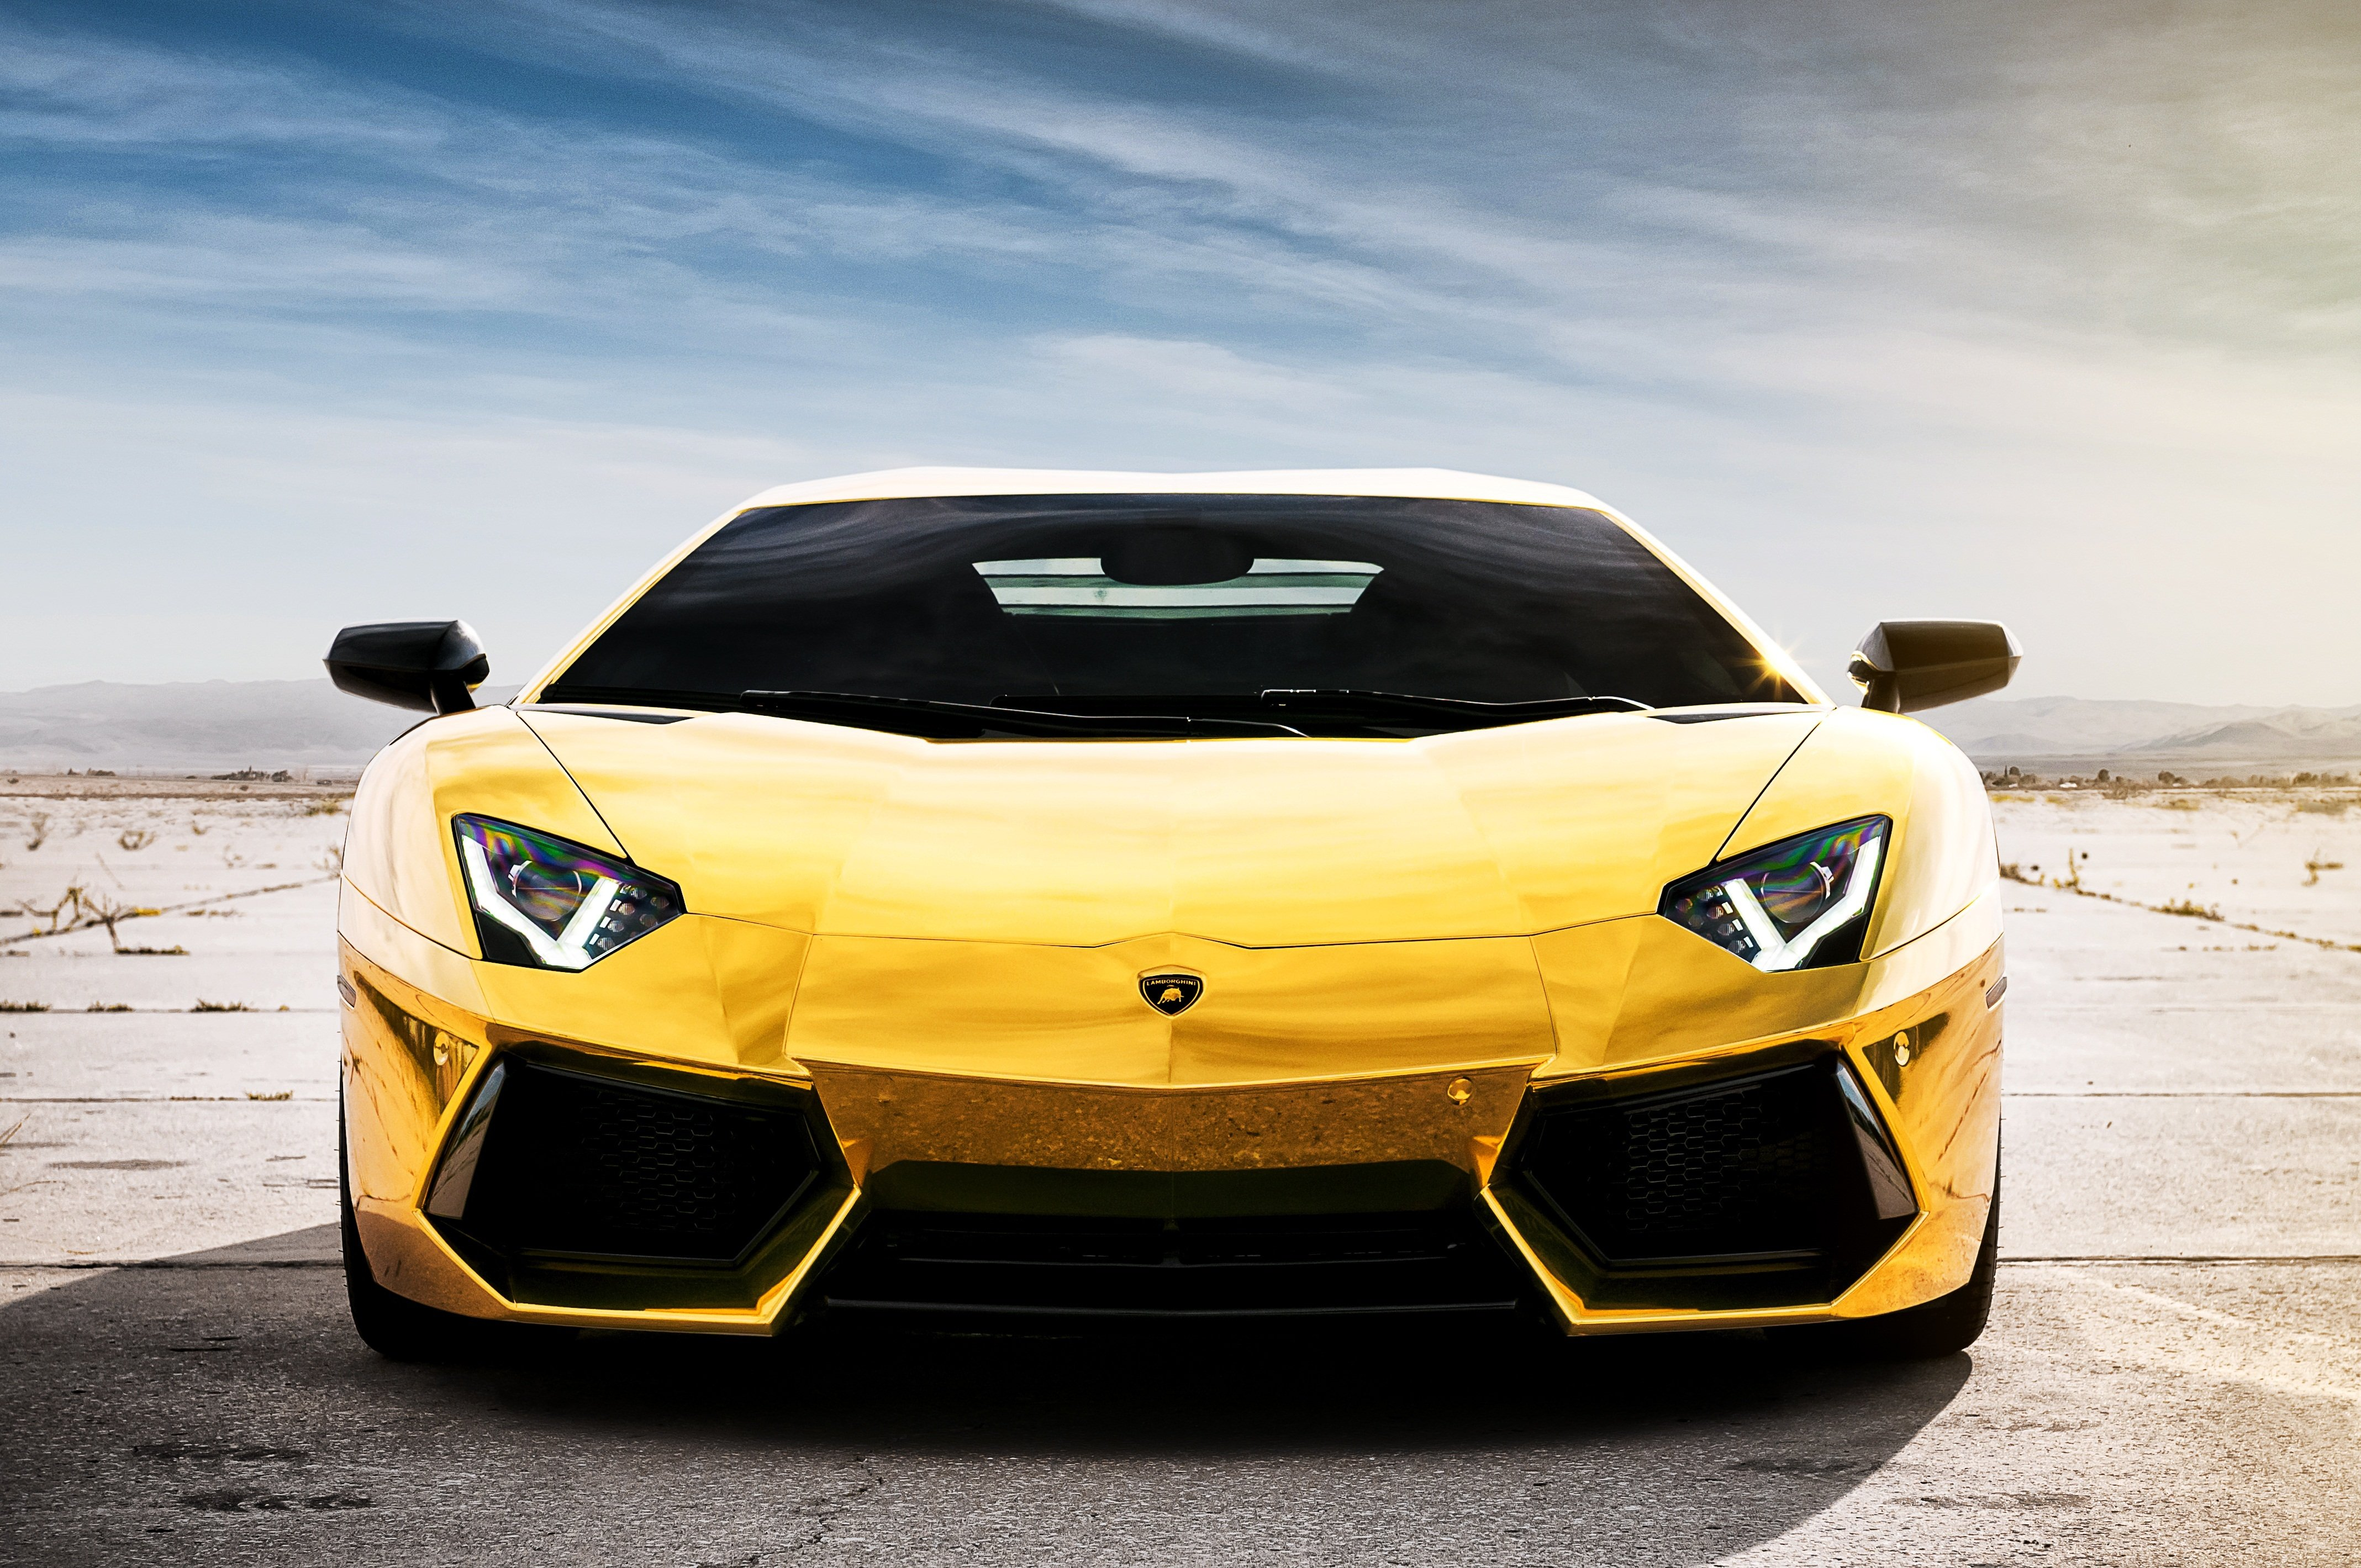 black lamborghini gallardo wallpaper hd with Lamborghini 4k Wallpaper on Black Lamborghini Murcielago Racing Wallpapers w35620 as well 2015 vorsteiner lamborghini aventador zaragoza 2 Wallpapers together with New Bmw I8 Black Red To Picture V9fl With Bmw I8 Black In Favorite moreover 10222575 together with Hd Wallpapers Of Bollywood Movies.